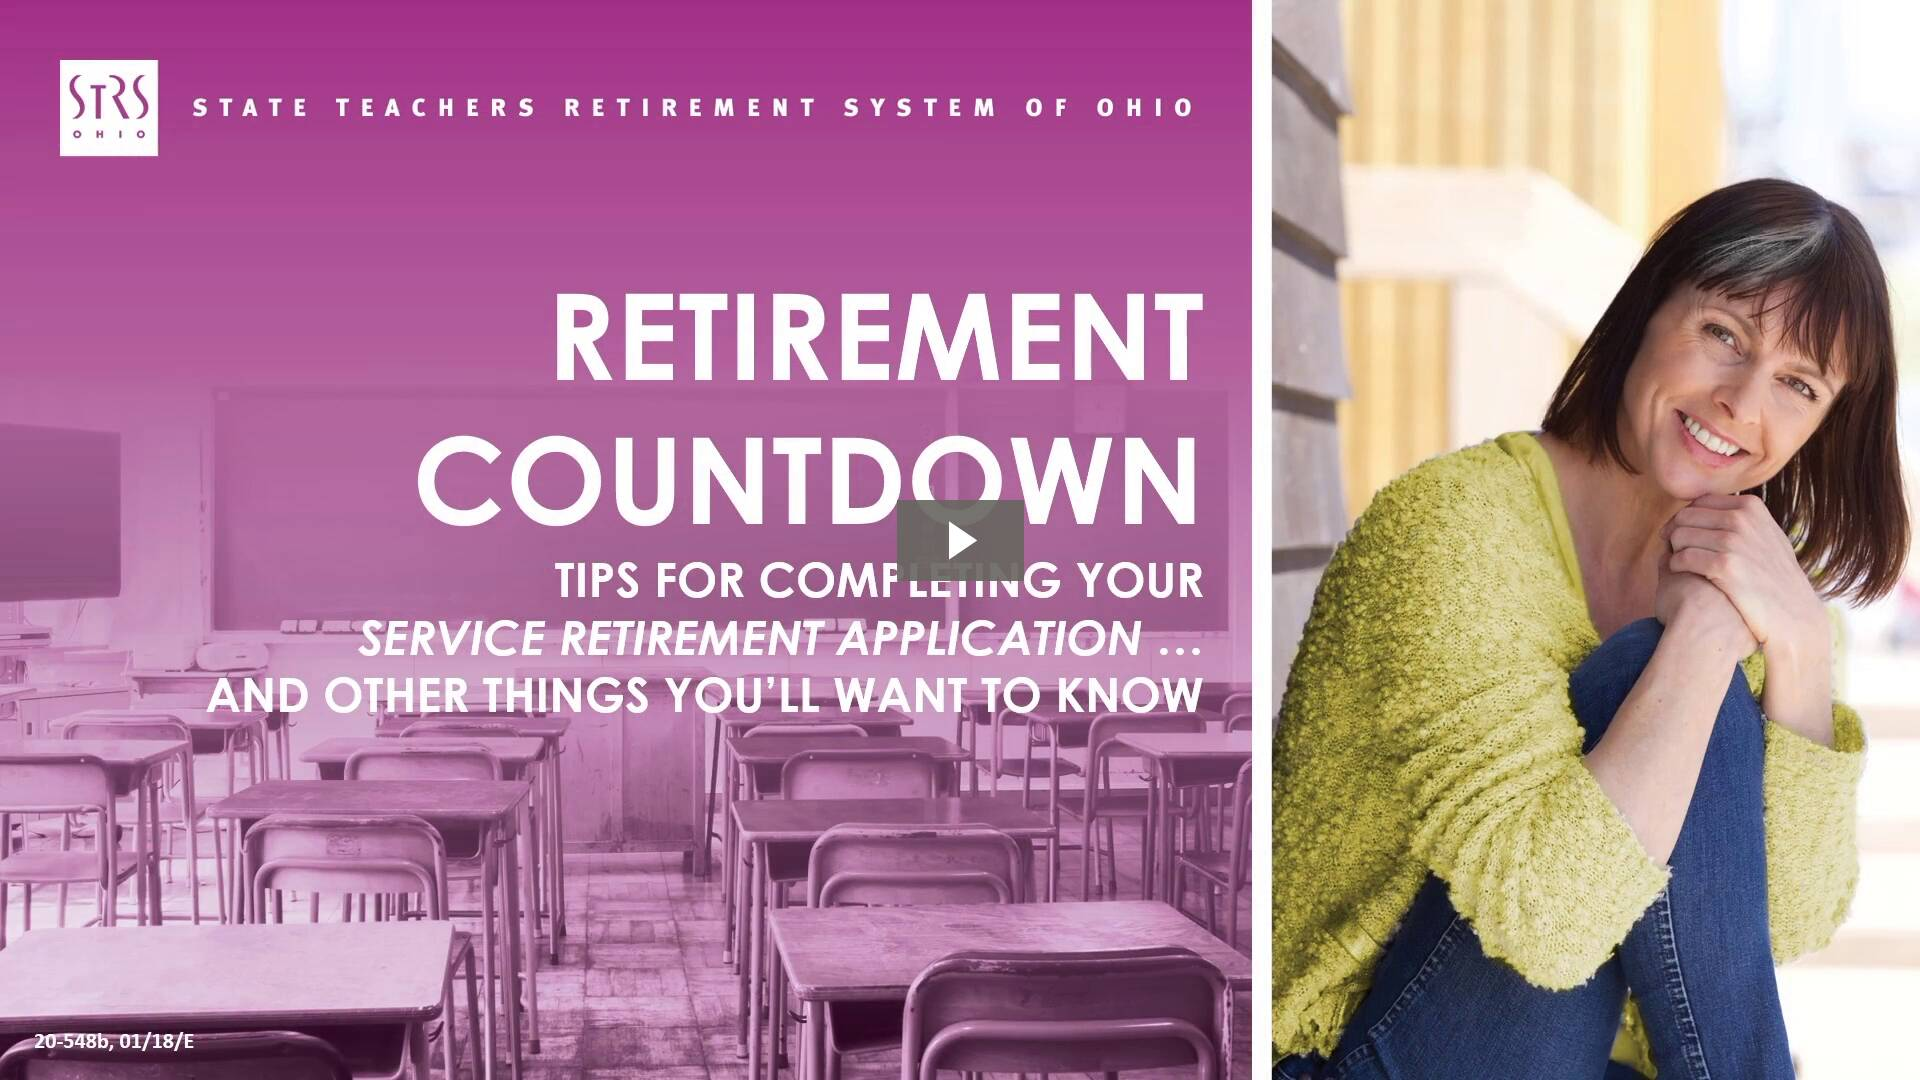 Thumbnail for the 'Retirement Countdown' video.